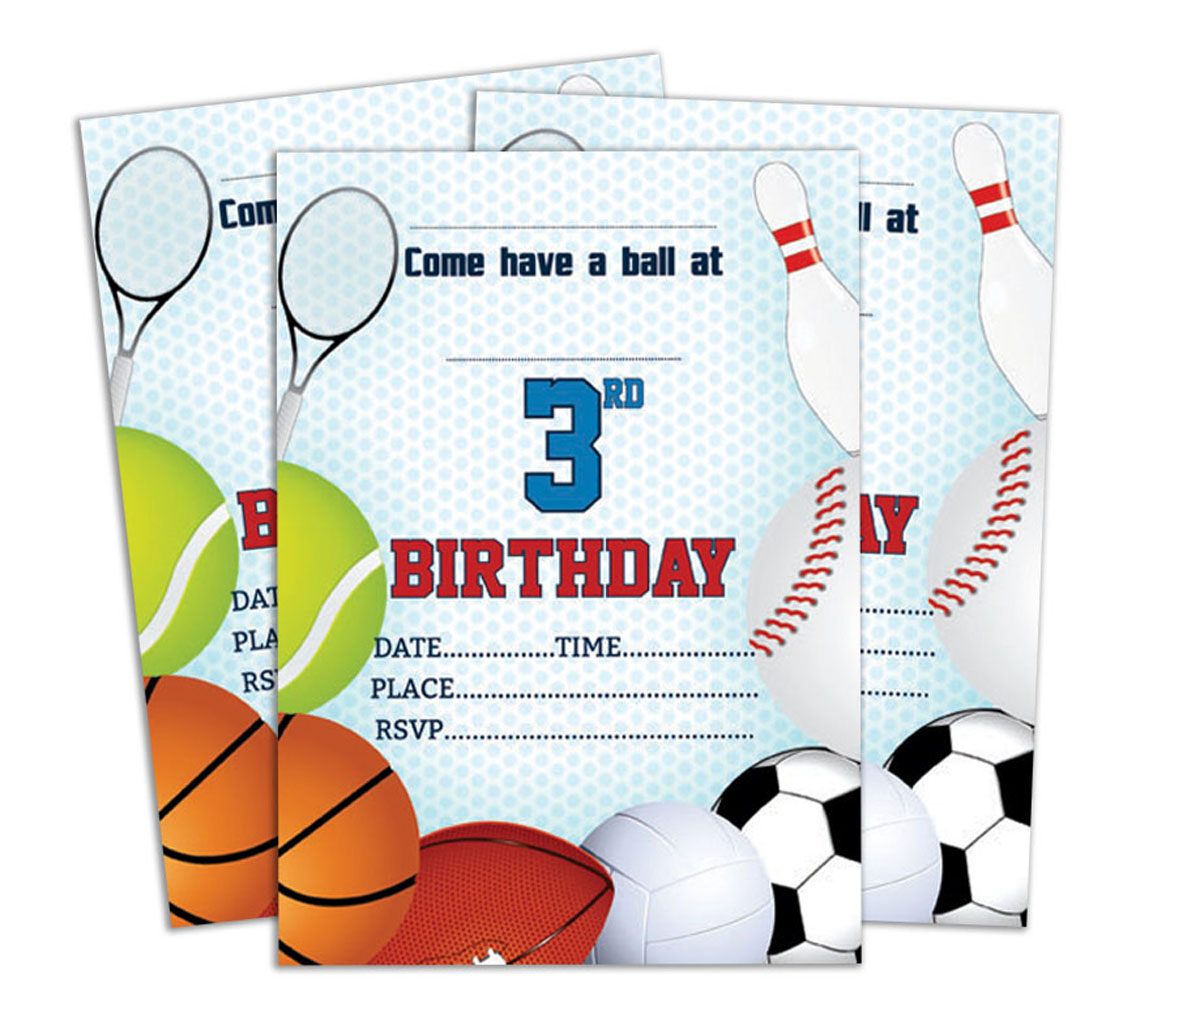 Details About Birthday Invitation Card Write Blank Invites Party Supplies Pack Of 28 Ds In112d